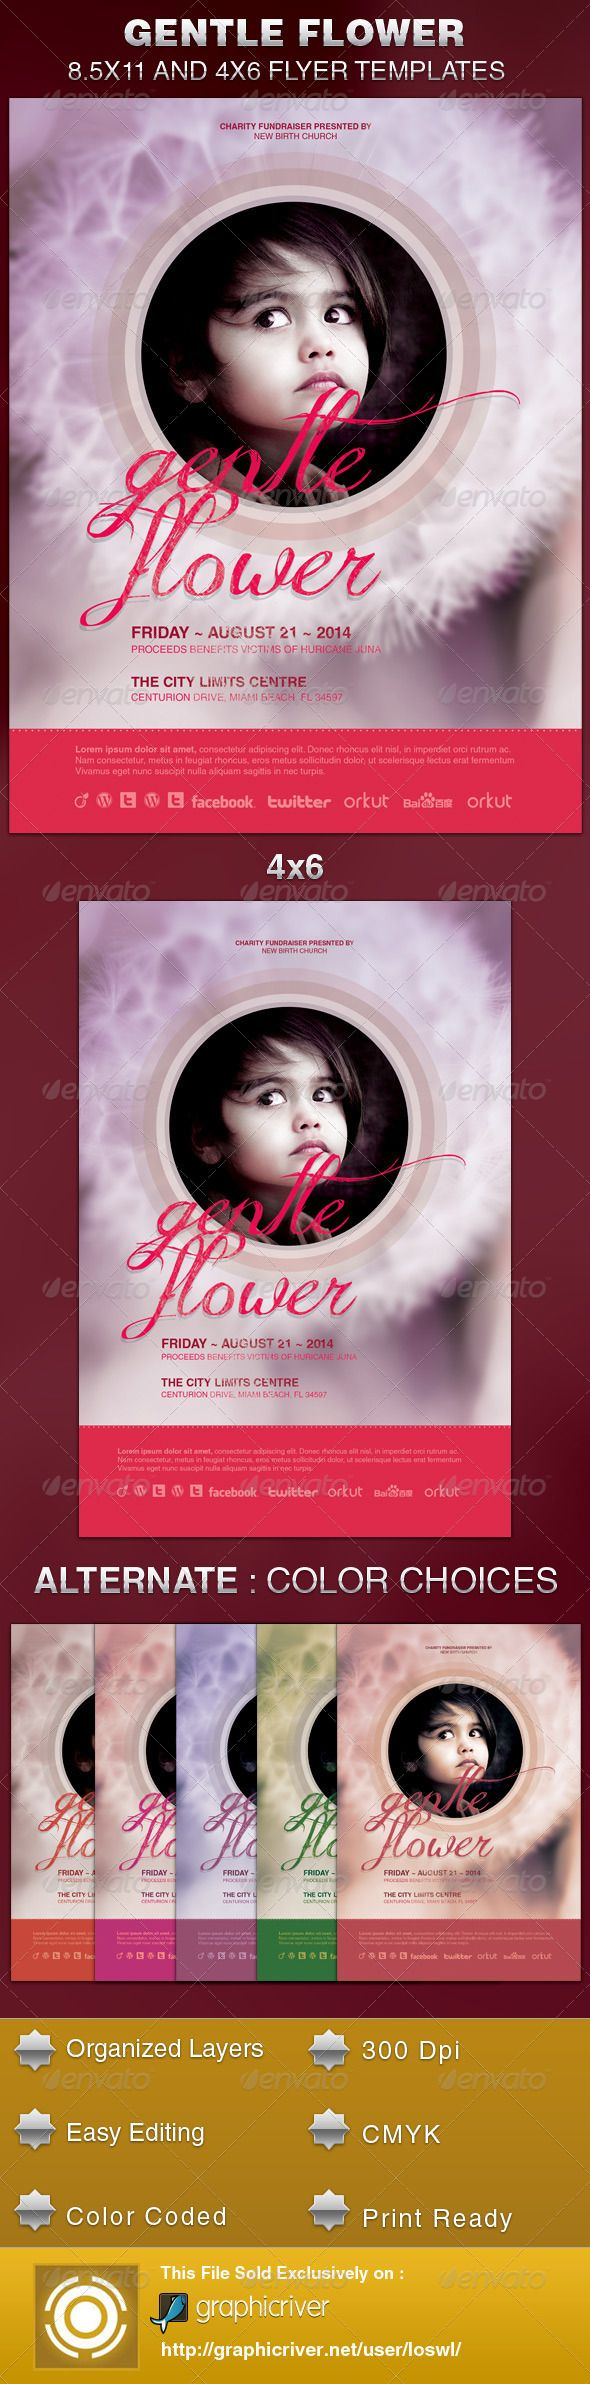 the gentle flower church flyer template is sold exclusively on graphicriver it can be used for your church events gospel concert etc or for any other